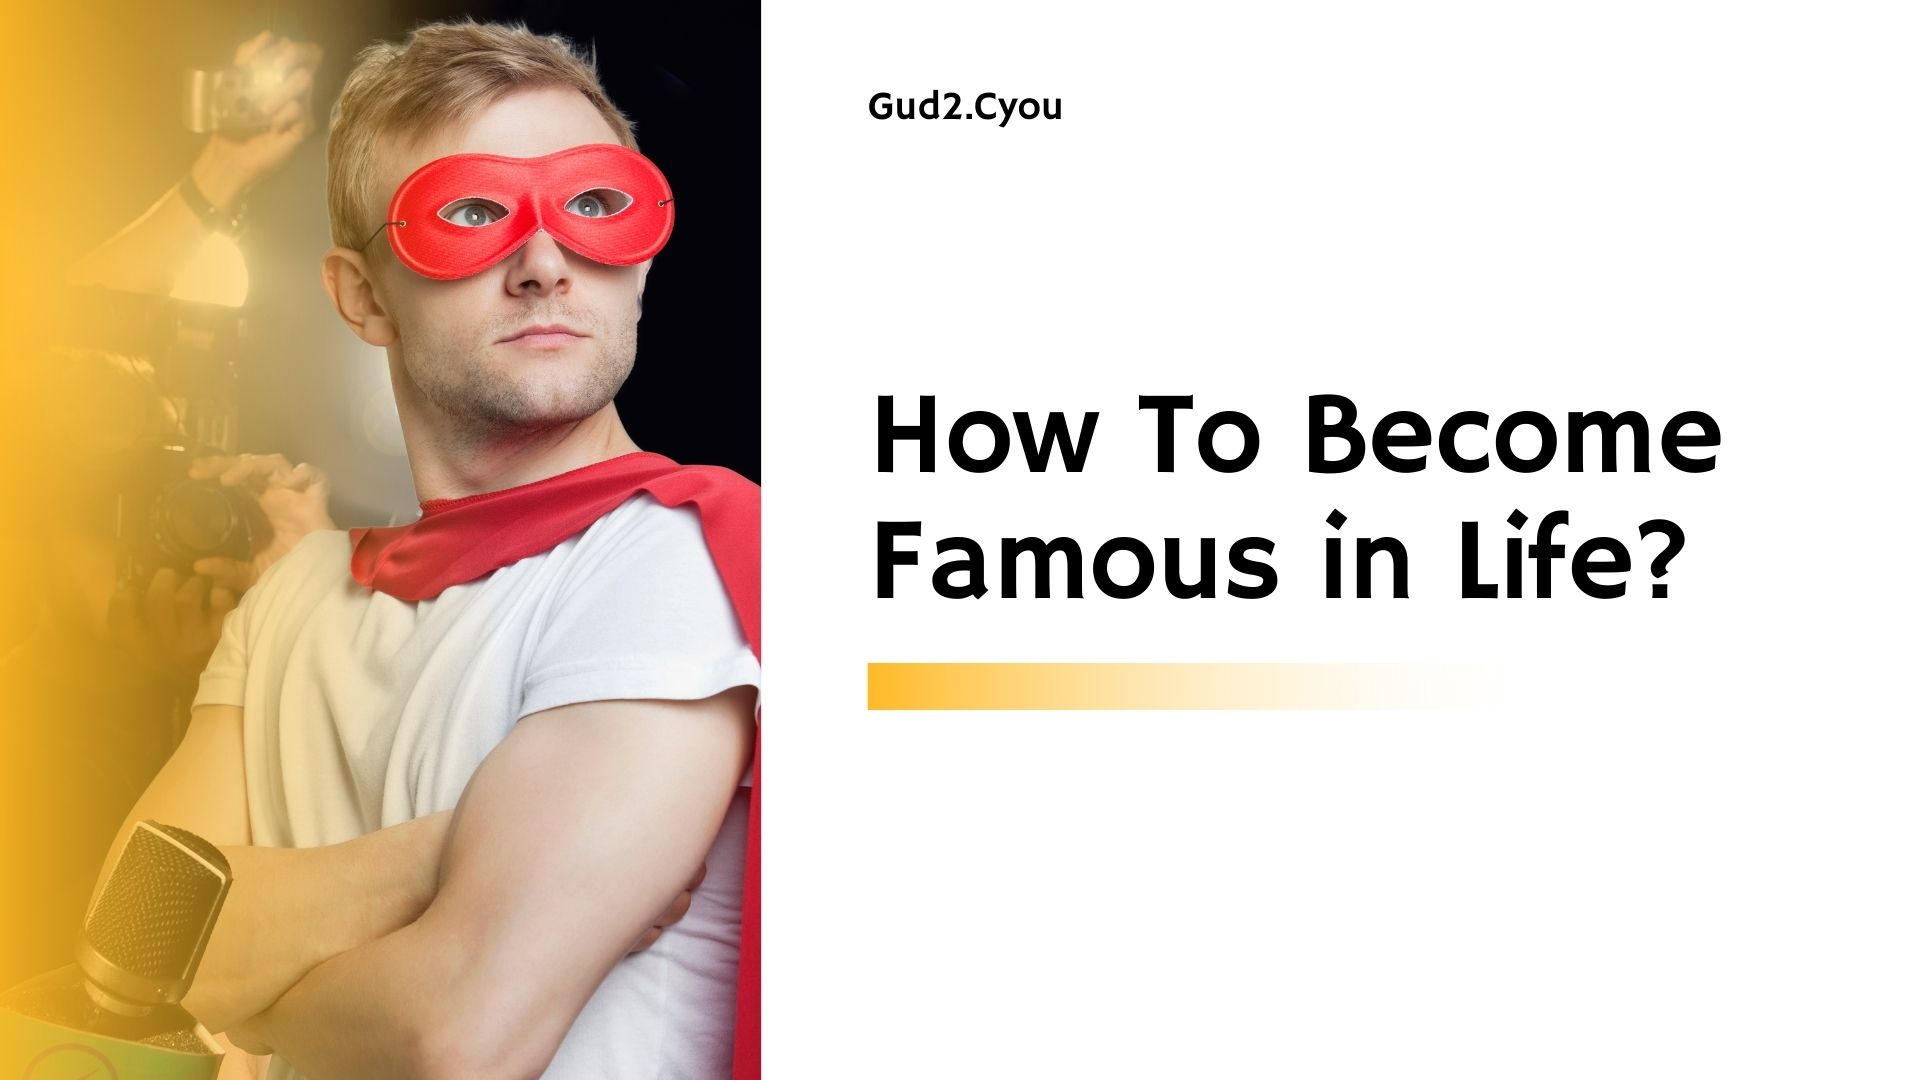 How To Become Famous in Life